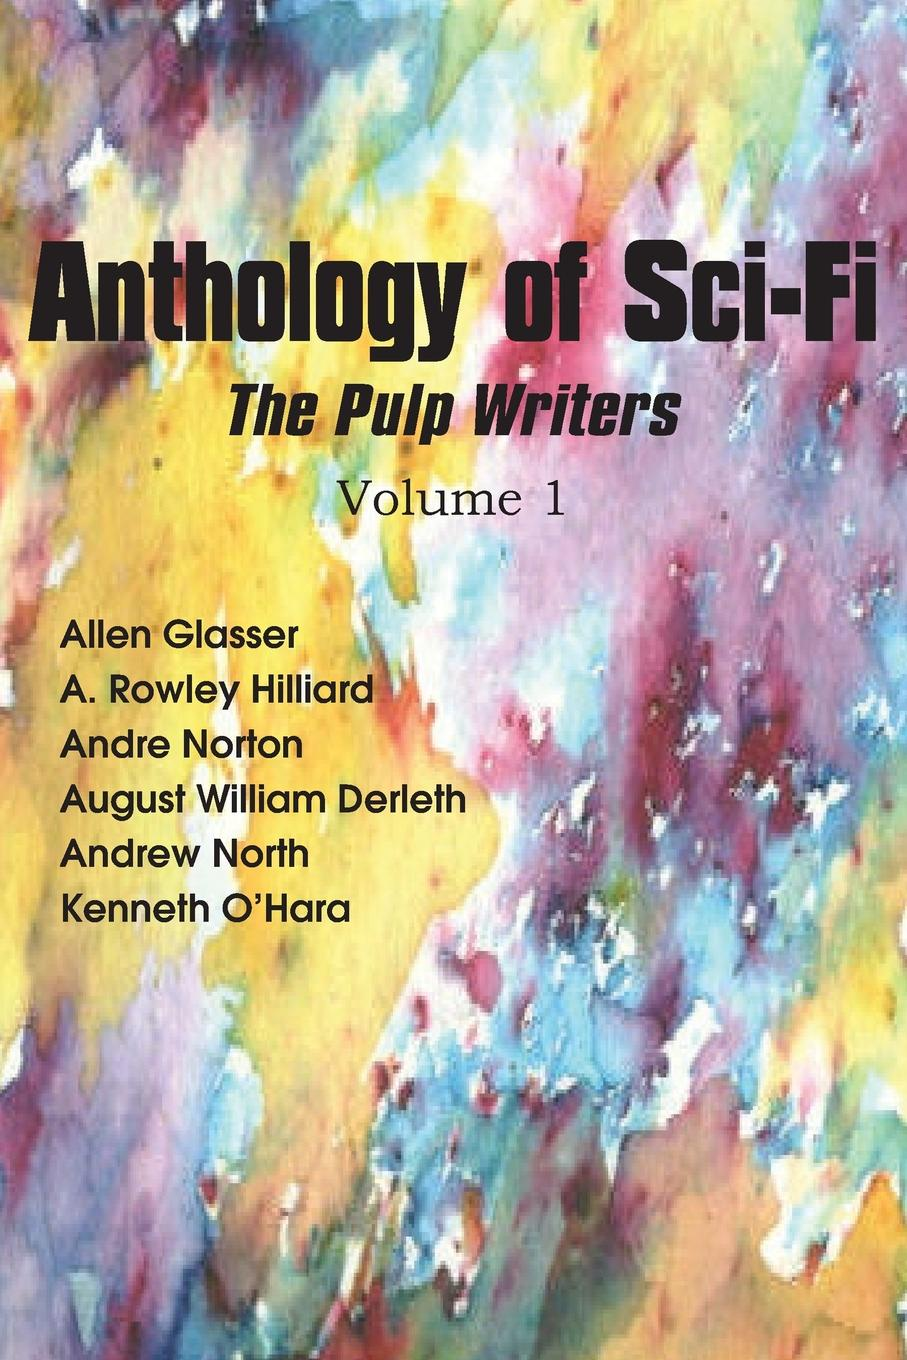 Andre Norton, William Derleth, Kenneth O'Hara Anthology of Sci-Fi, the Pulp Writers V1 a norton wraiths of time